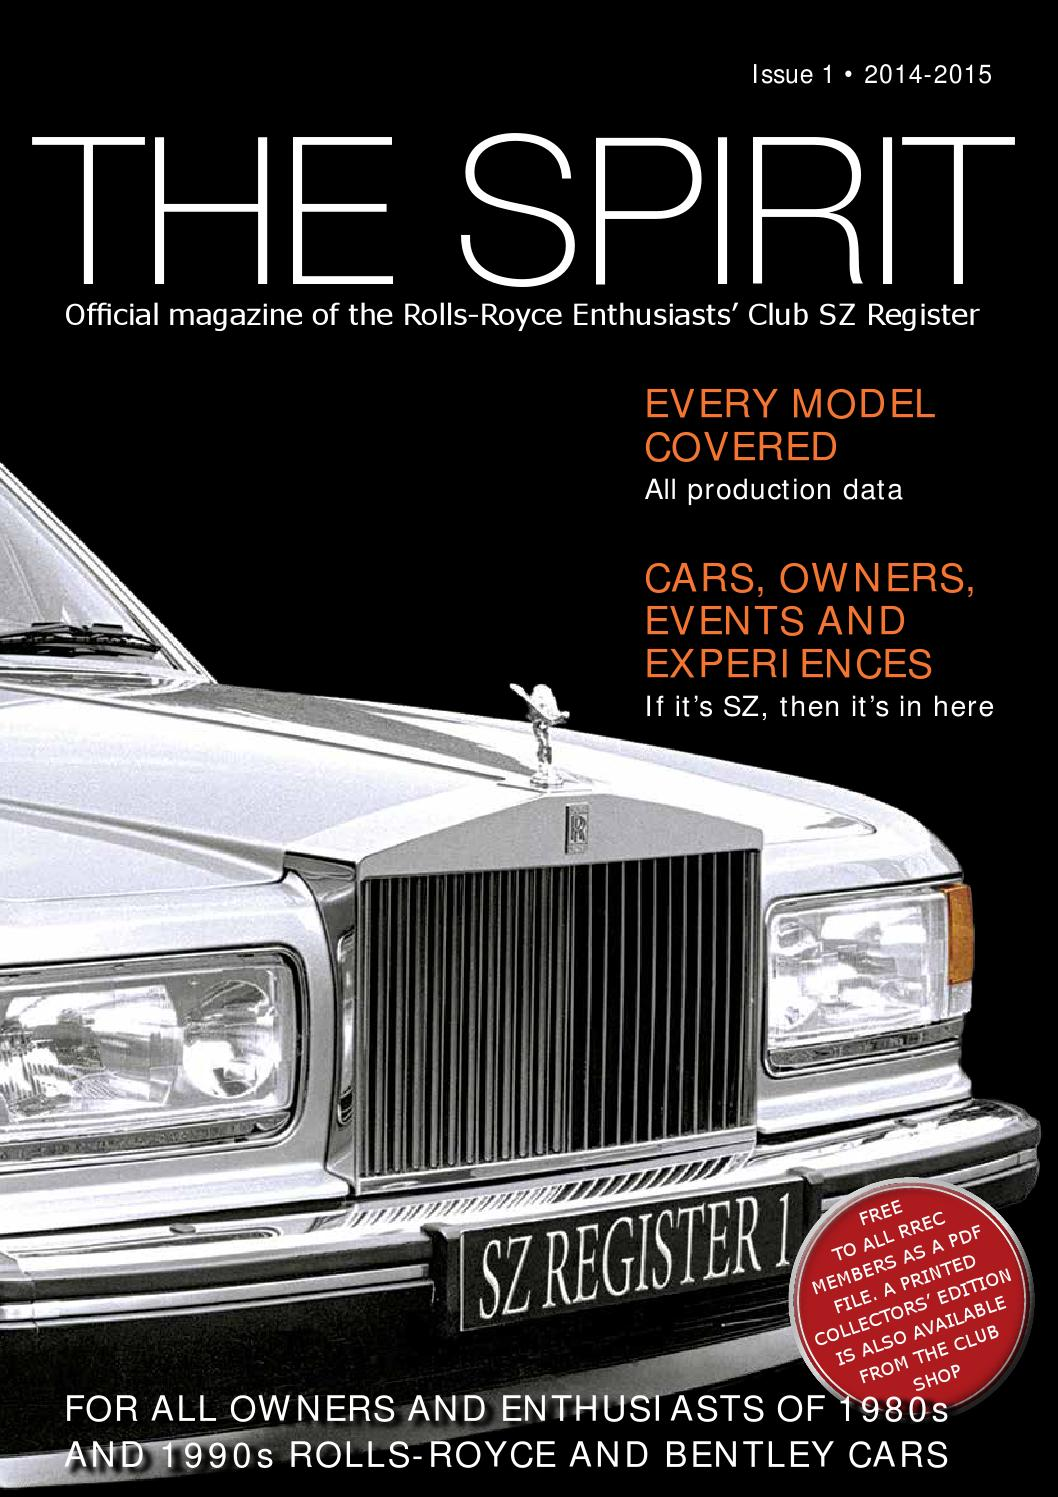 The Spirit Issue 1 2014 2015 By Cades Guides Issuu Vehicle Wiring Diagram 1996 Dutchman